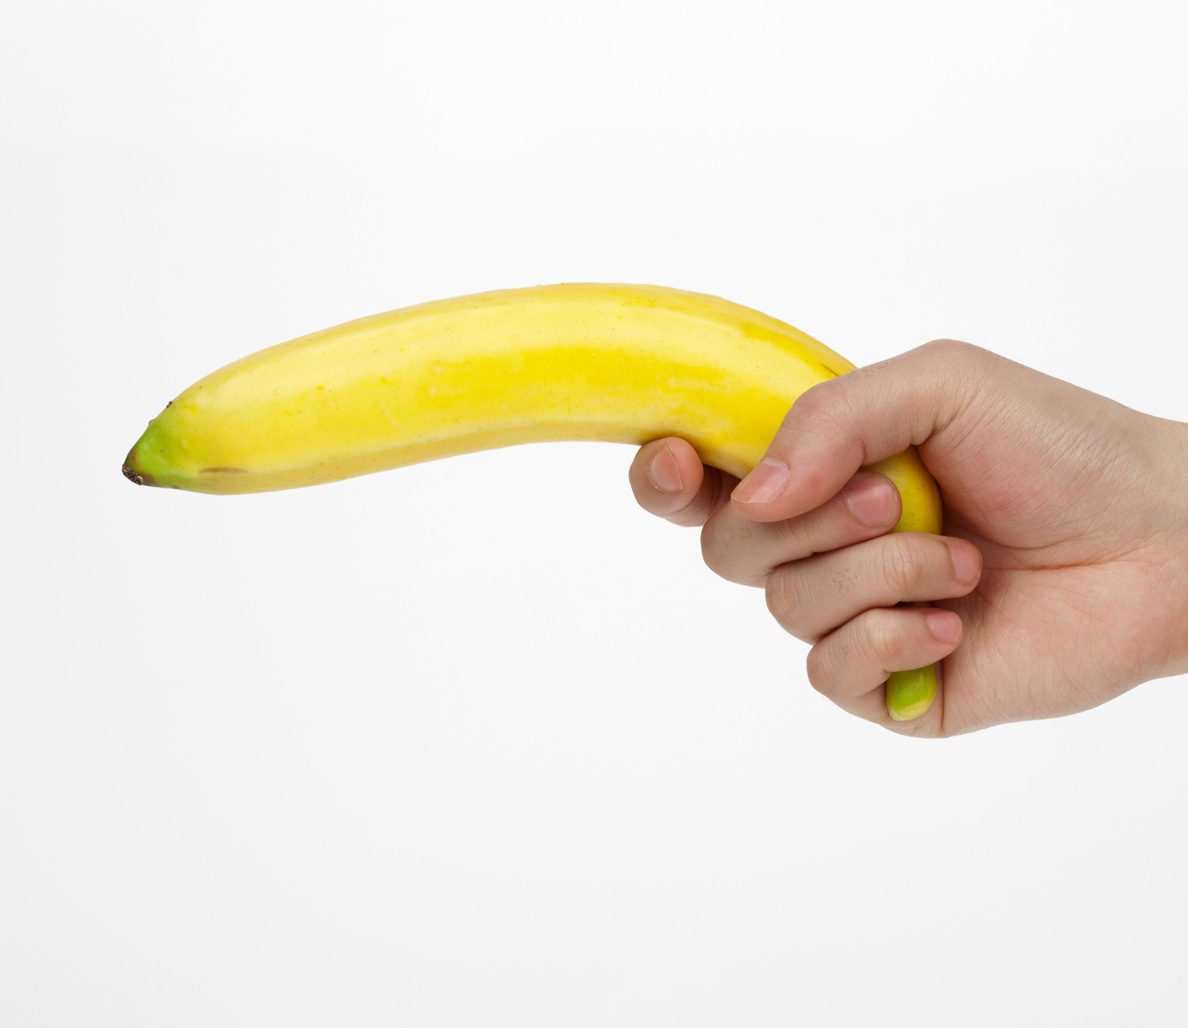 Is there a way to make my penis bigger